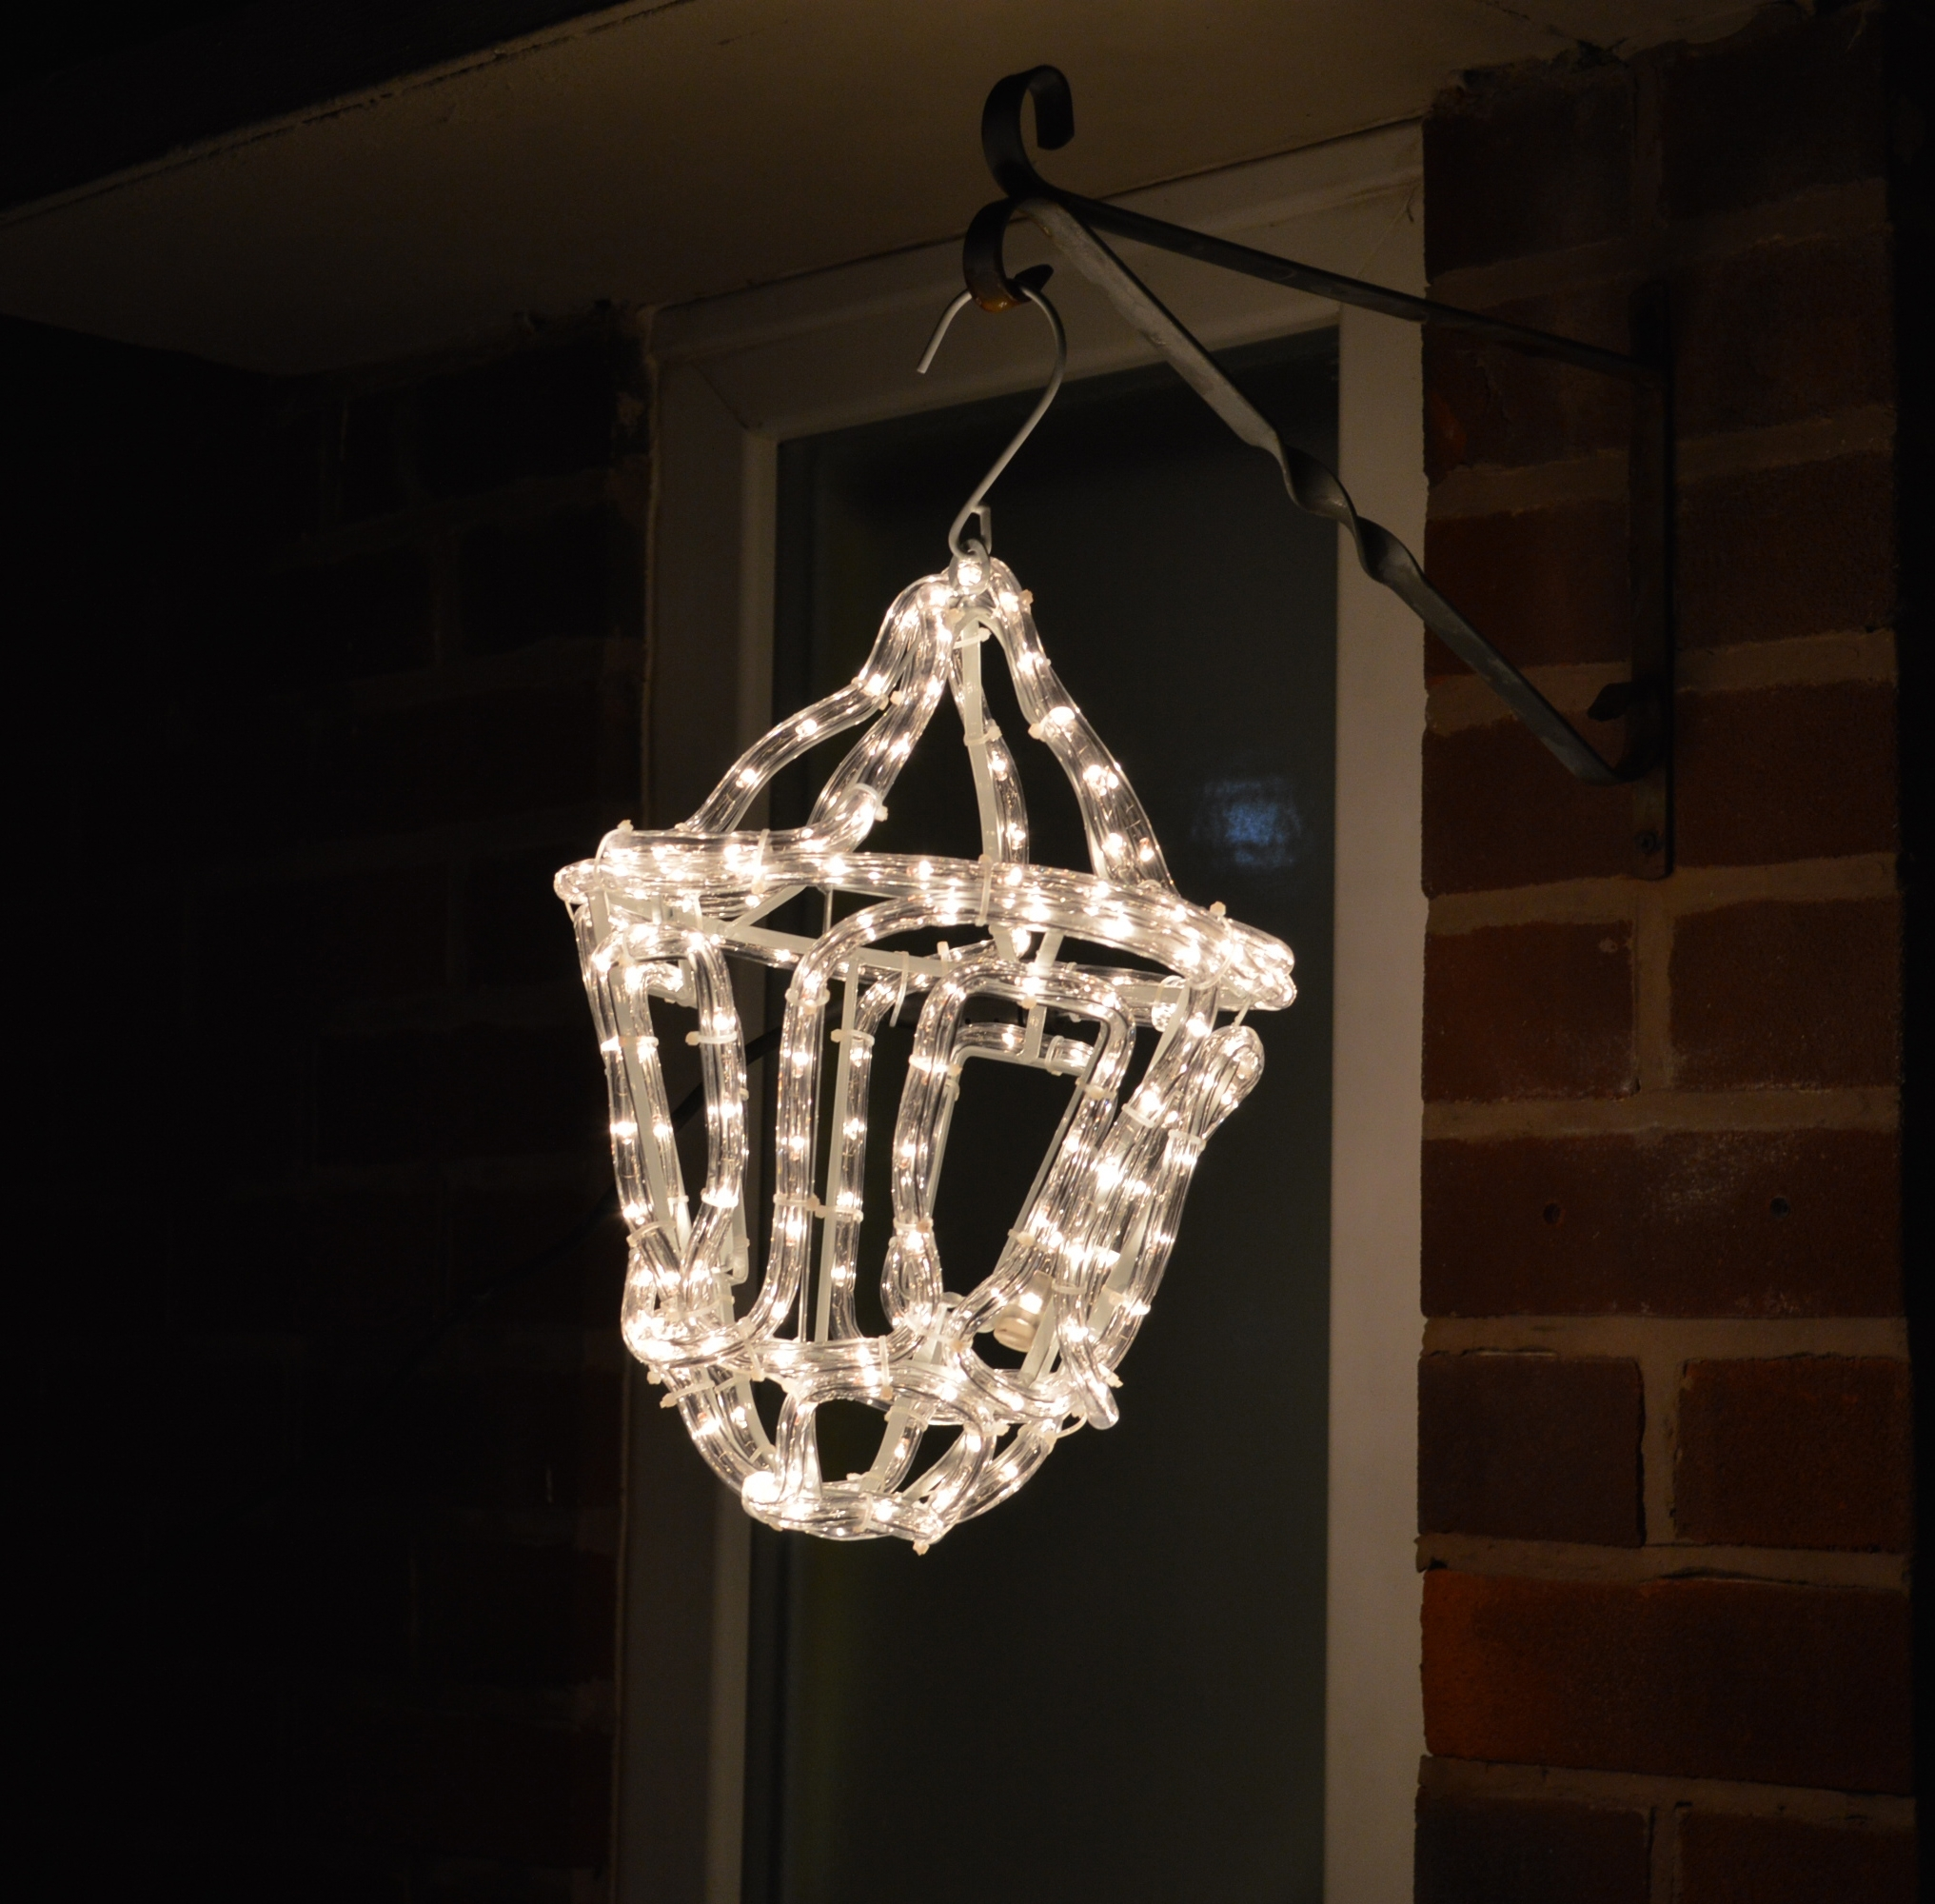 33Cm Premier Outdoor Led Lantern Rope Light Christmas Decoration In regarding Outdoor Christmas Rope Lanterns (Image 5 of 20)